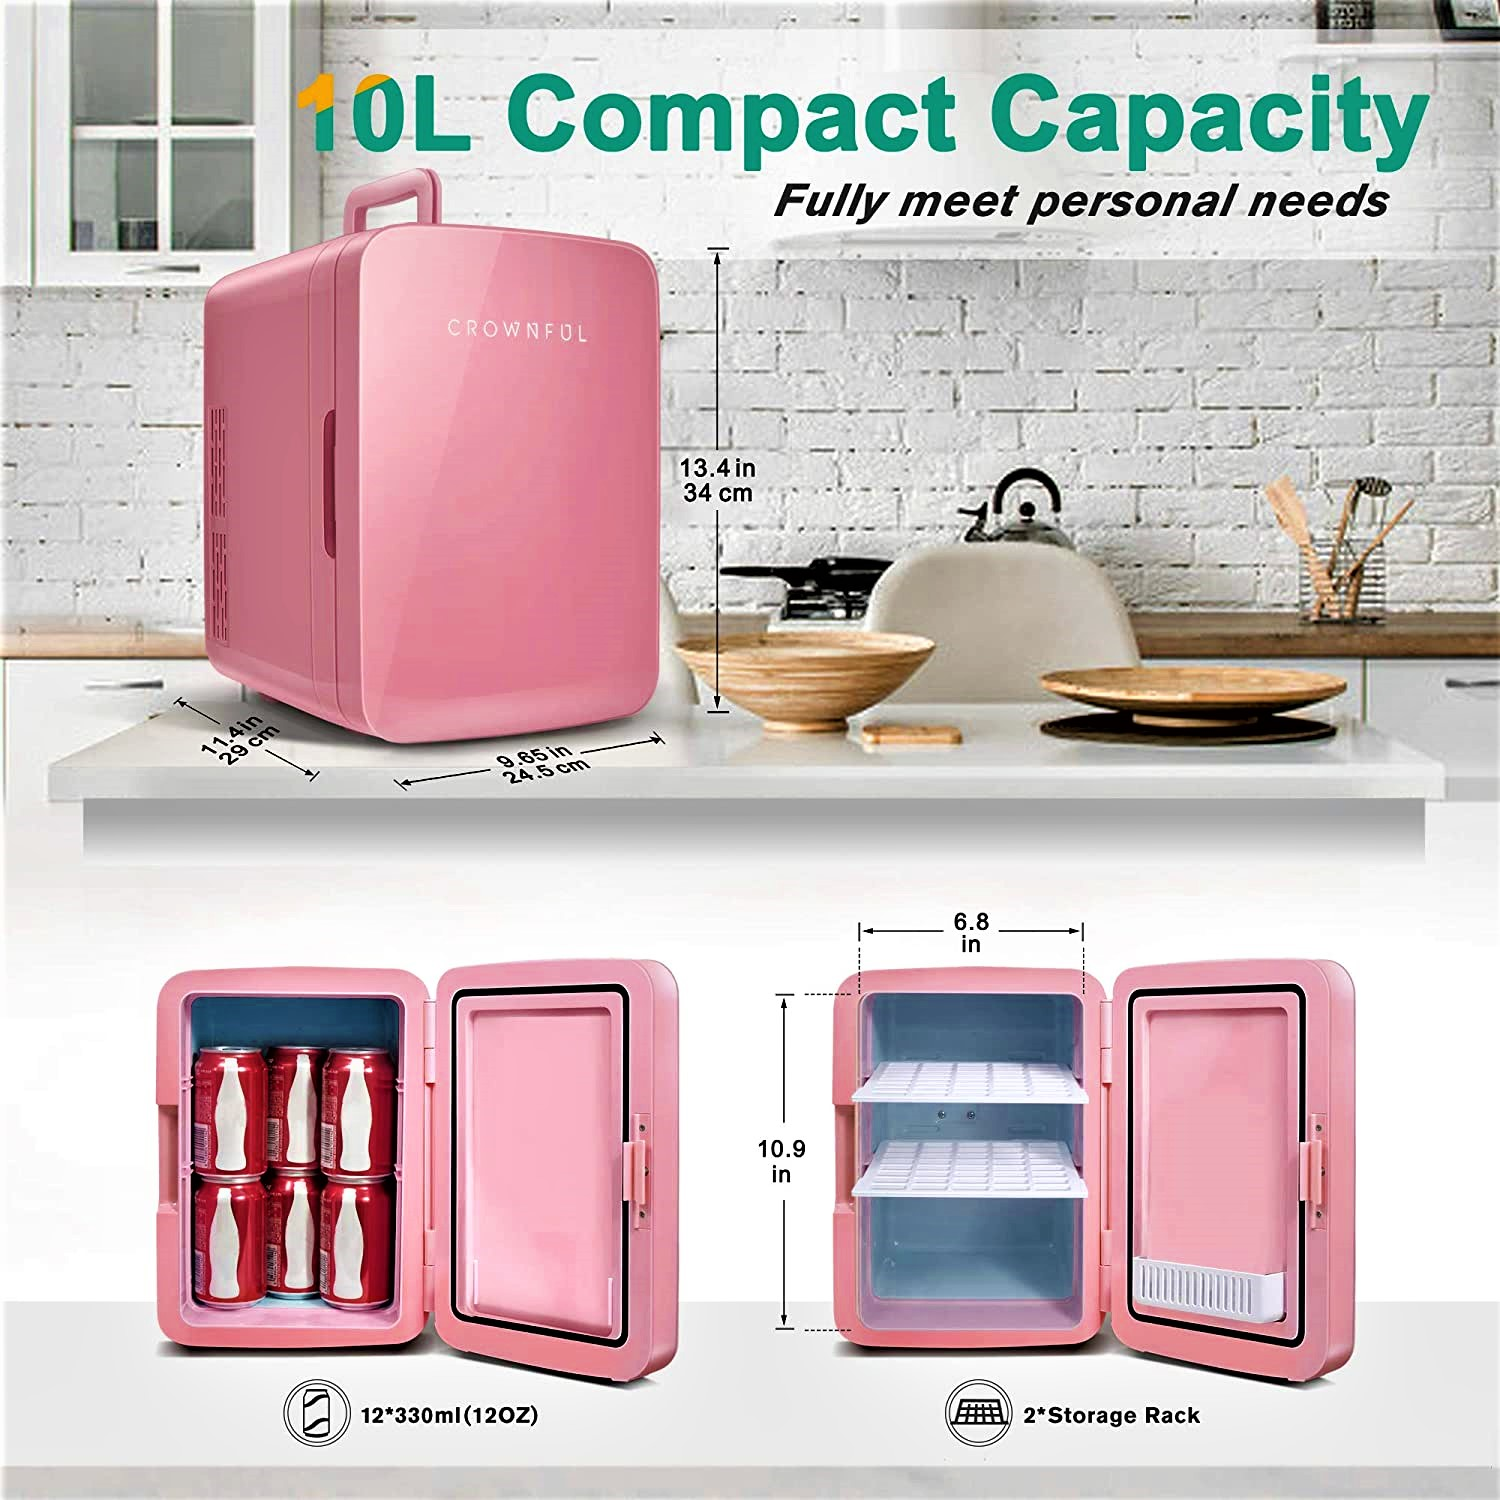 Crownful Mini Fridge, 10 Liter/12 Can Portable Cooler and Warmer Specs